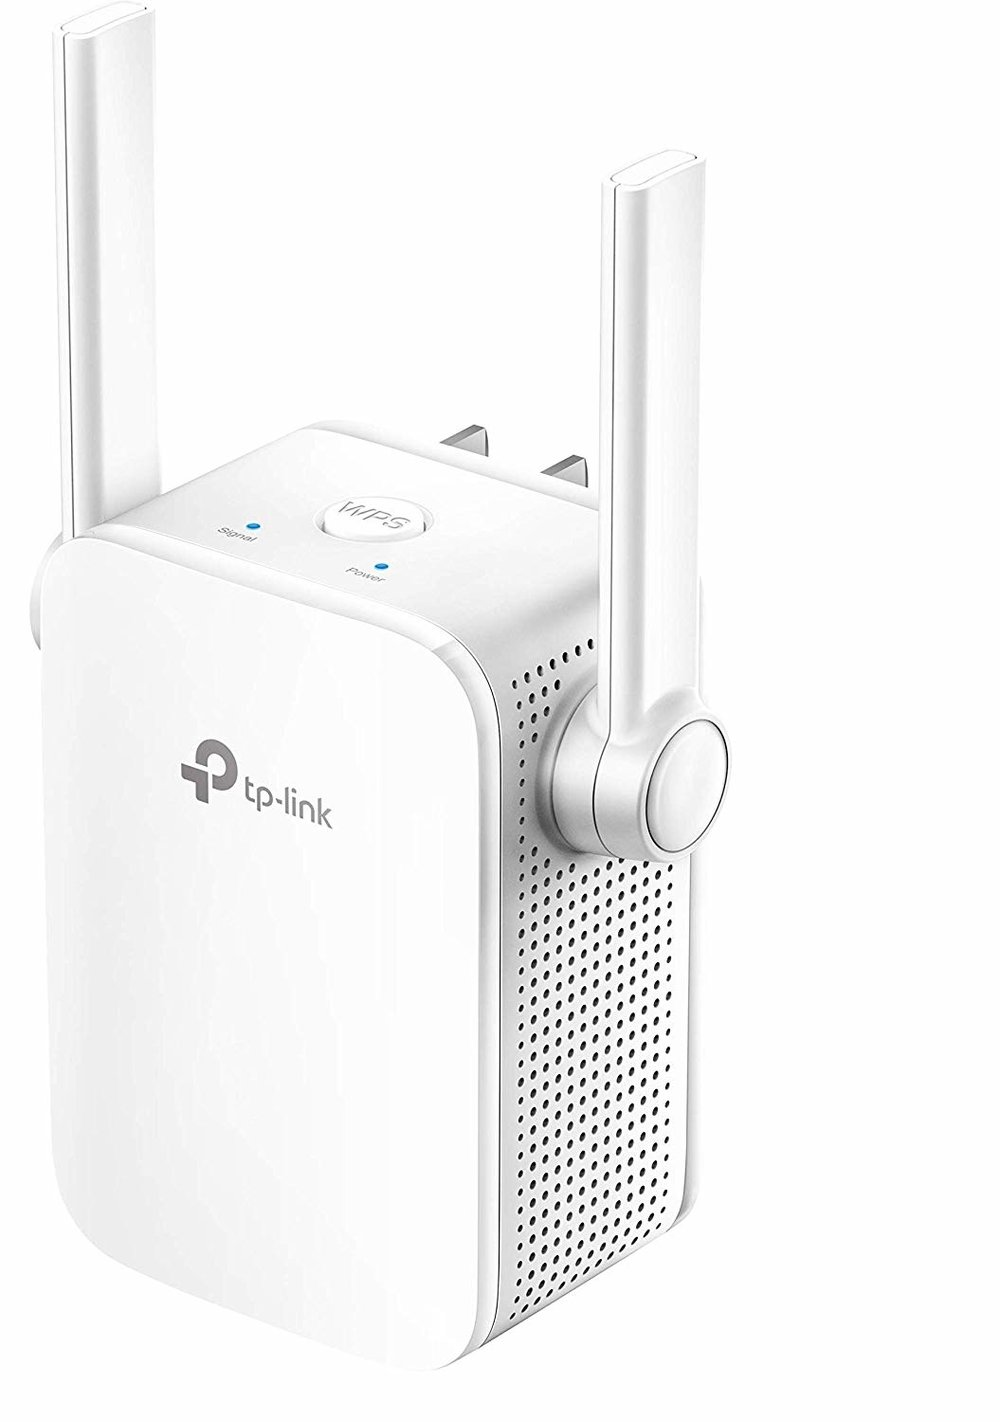 TP-LINK TL-WA855RE N300 Wi-Fi Wall Plug Range Extender - $16.97 - $3.02 off or 15%